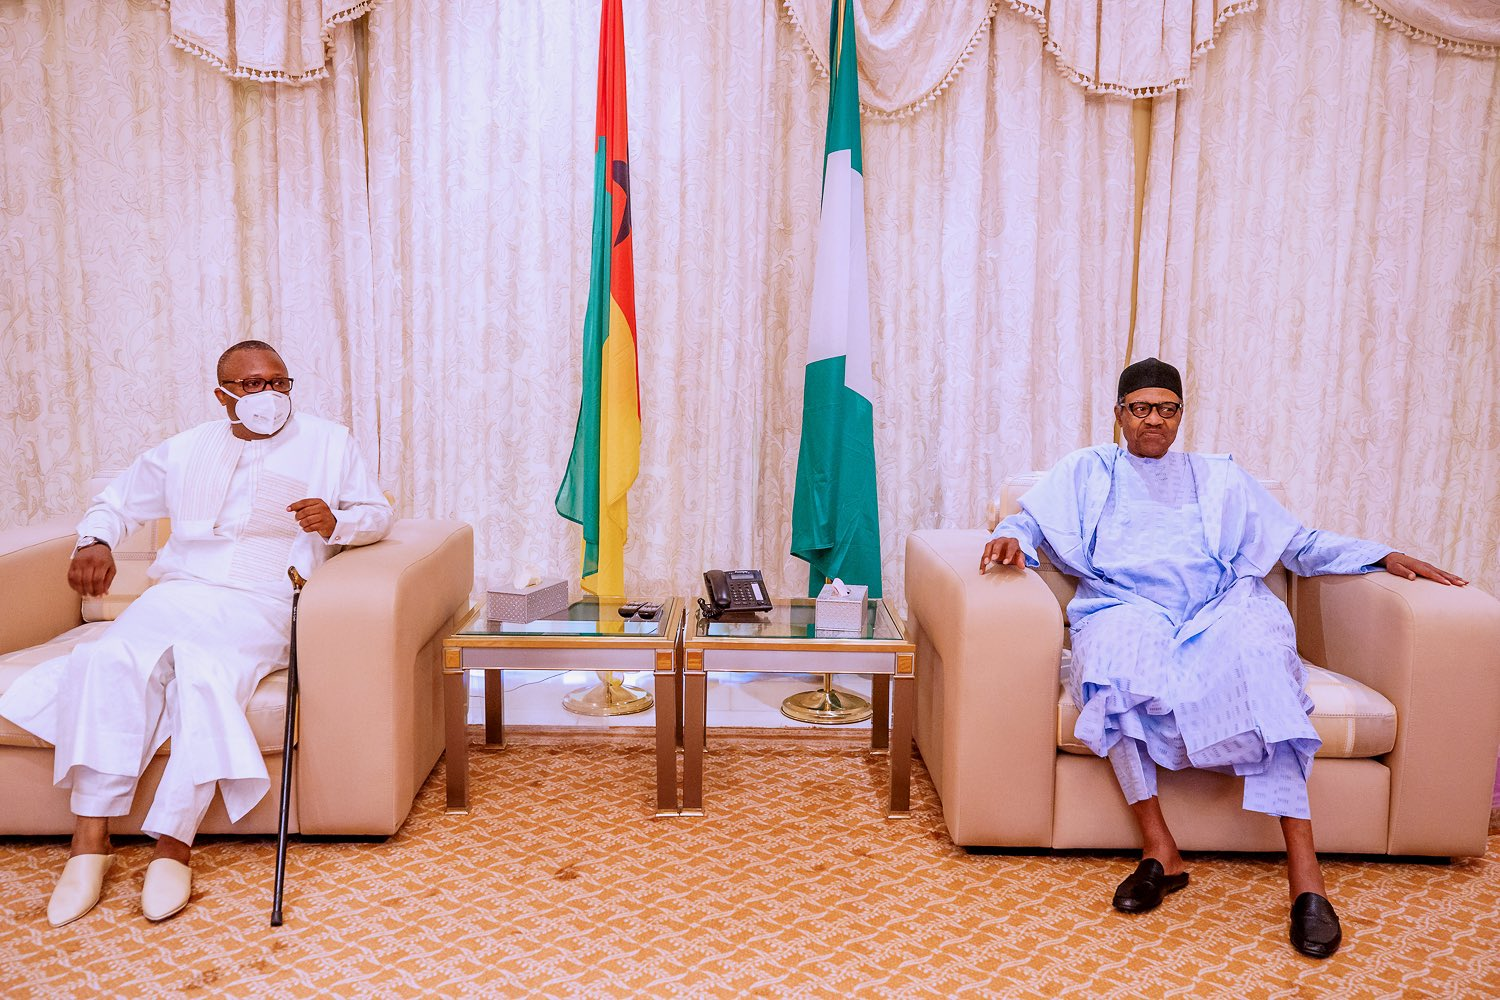 [BREAKING] #Buhari receives #Madagascar #Corona #Drug